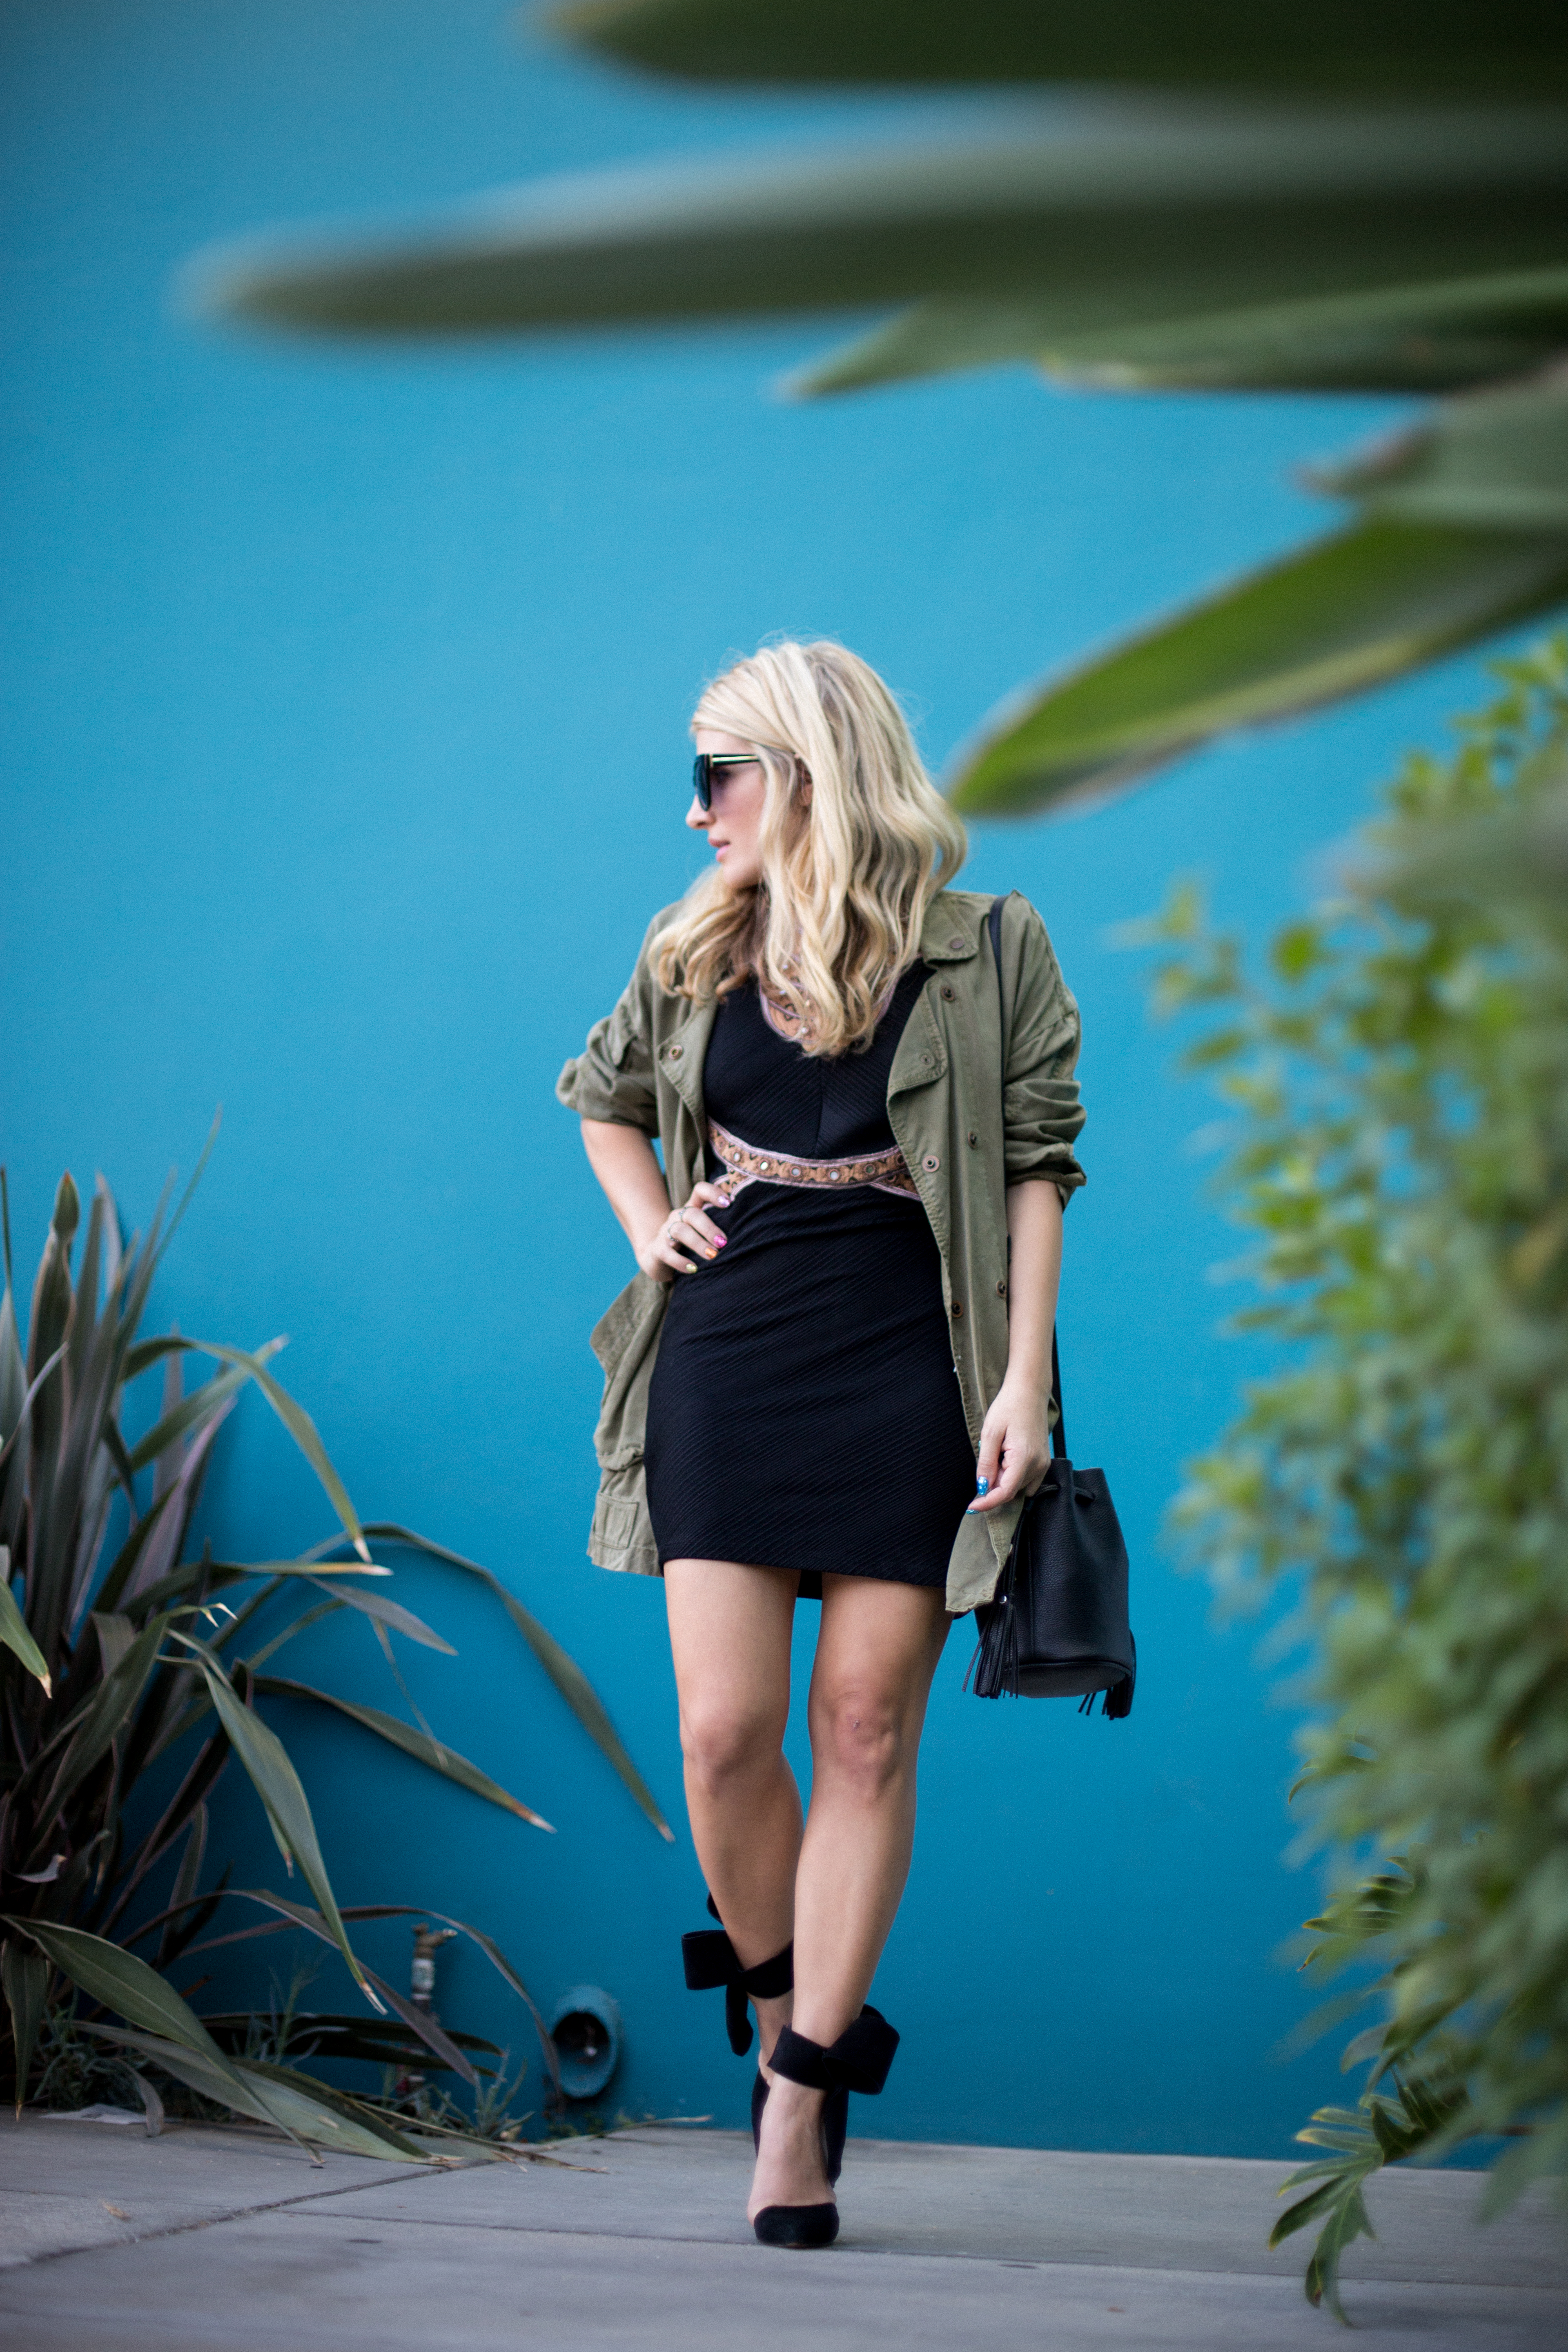 MrKate_OOTD_WhyNot (26 of 43)